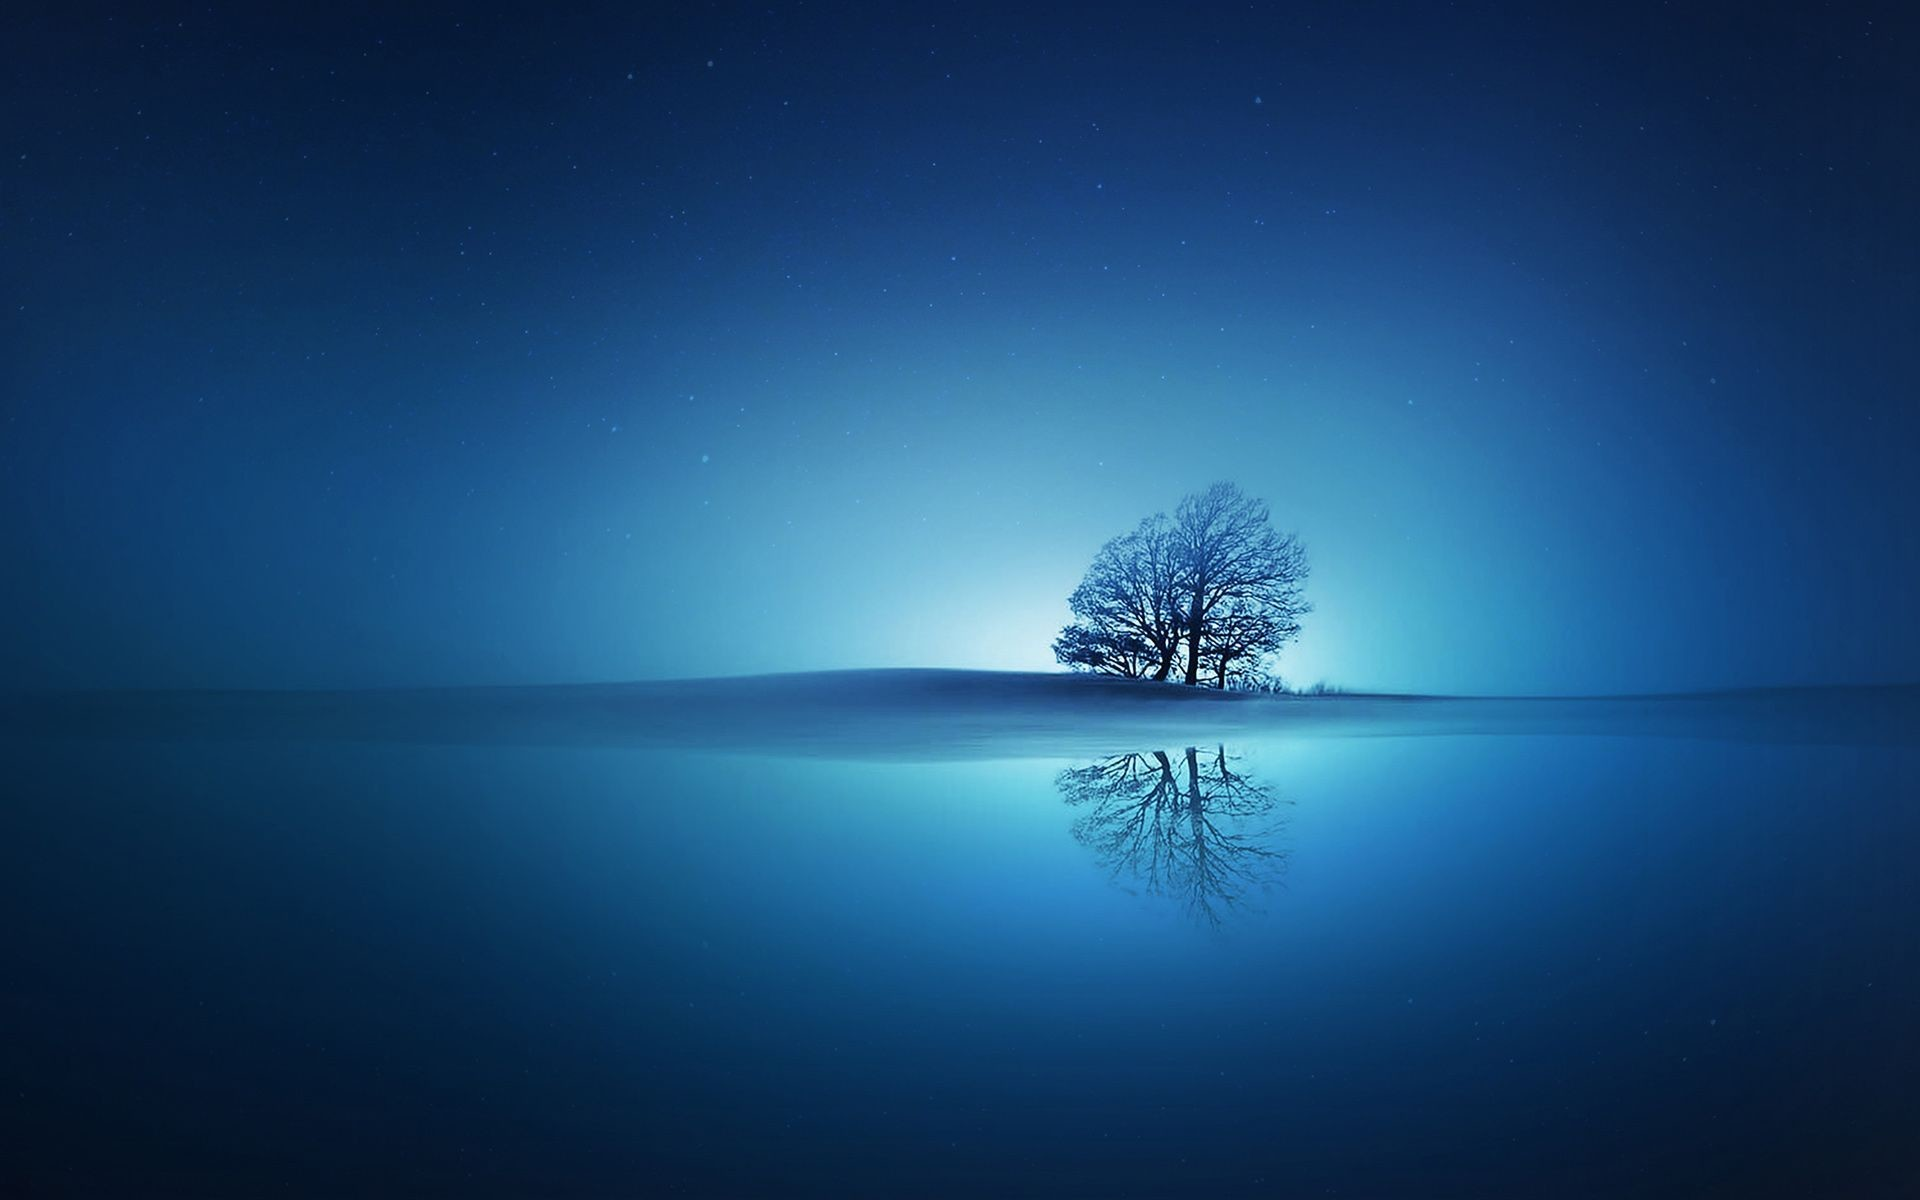 Blue Reflections Wallpapers